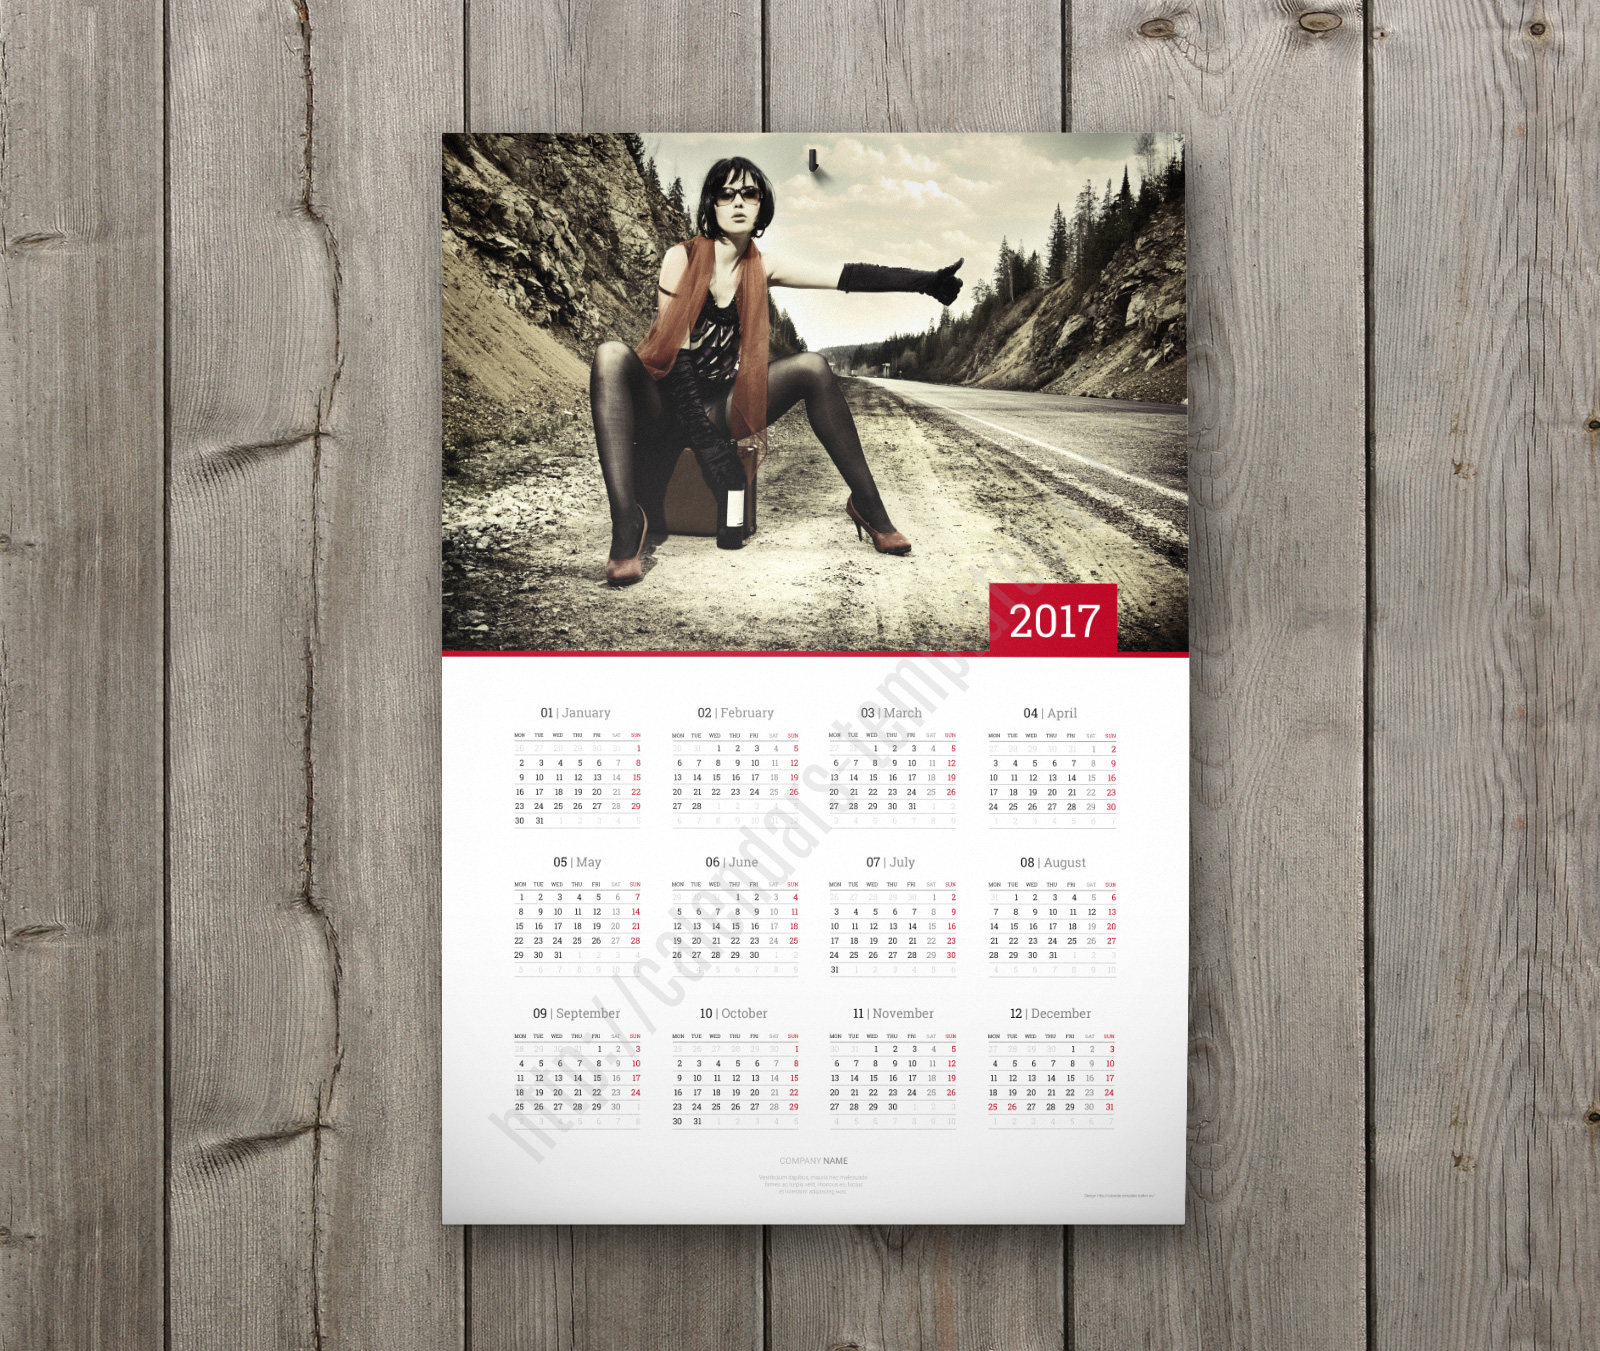 Calendar Design Poster : Wall calendar design for year custom clean modern